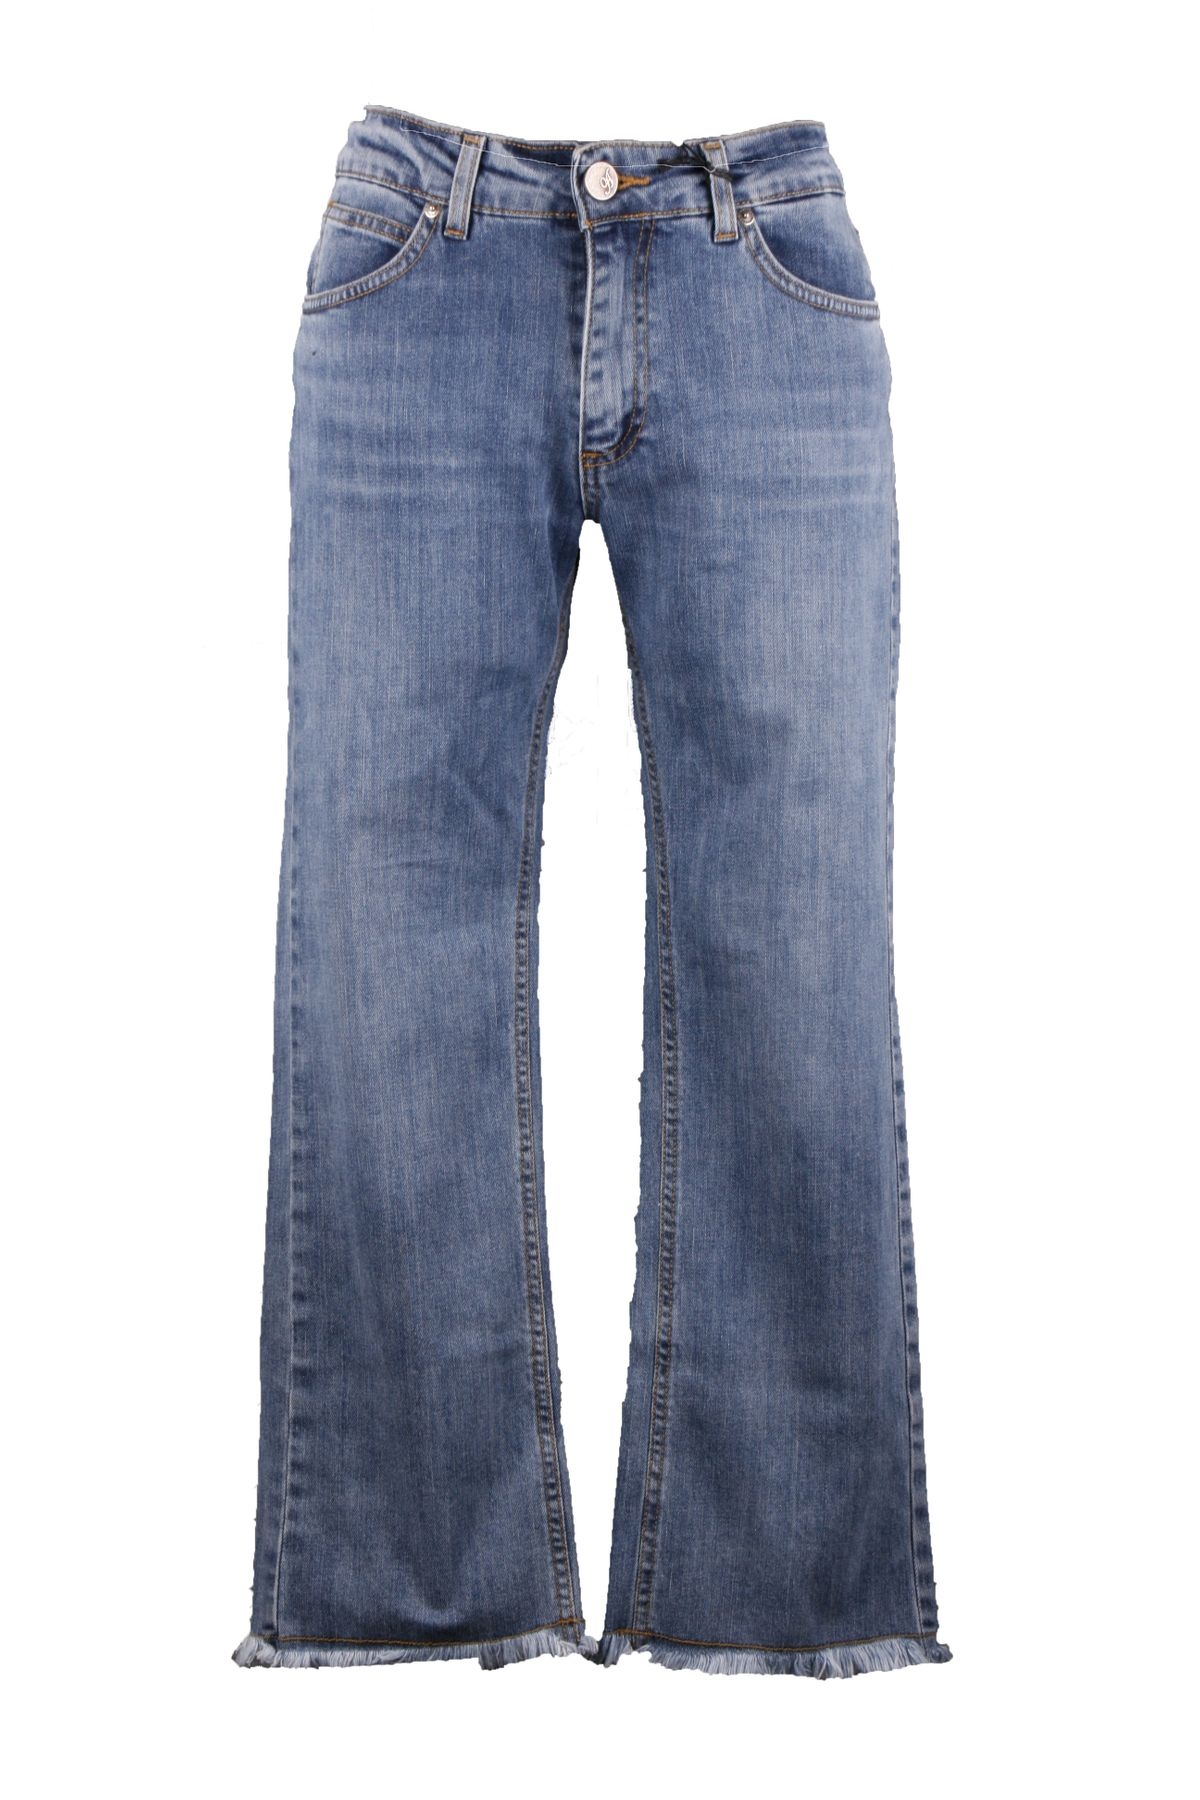 "Almanegra ""Fransenlook"" (Art. 1008 Denim)"